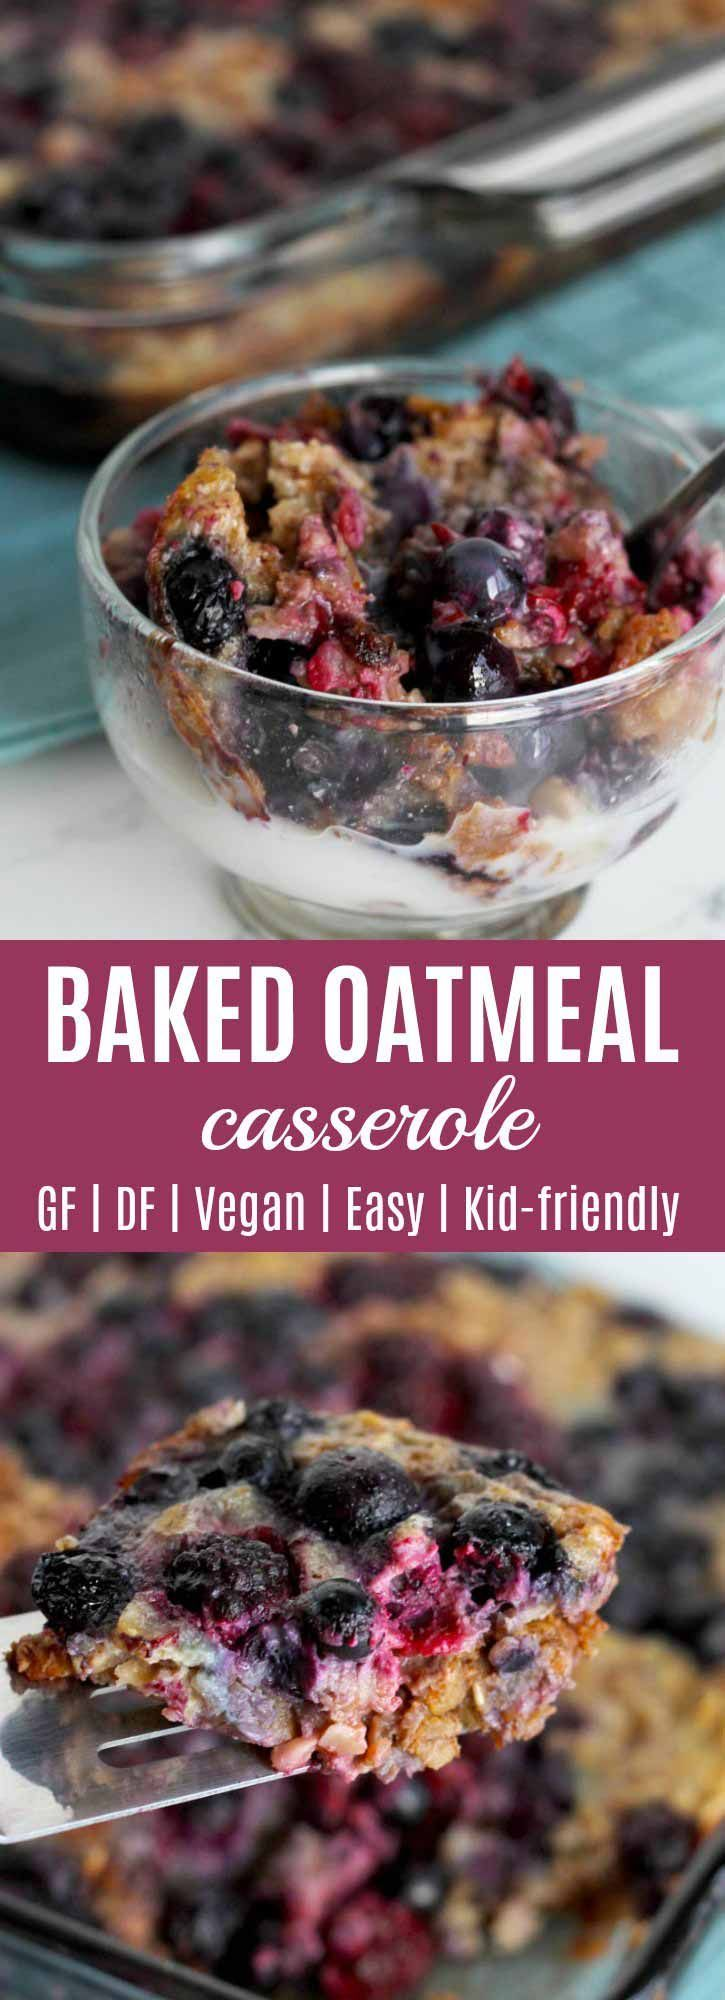 Baked Oatmeal Casserole (Healthy, Easy) You are going to love making and eating this Baked Oatmeal Casserole! Berries, cinnamon, walnuts, eggs, milk (any kind), and breakfast goodness all in one pan. #breakfast |